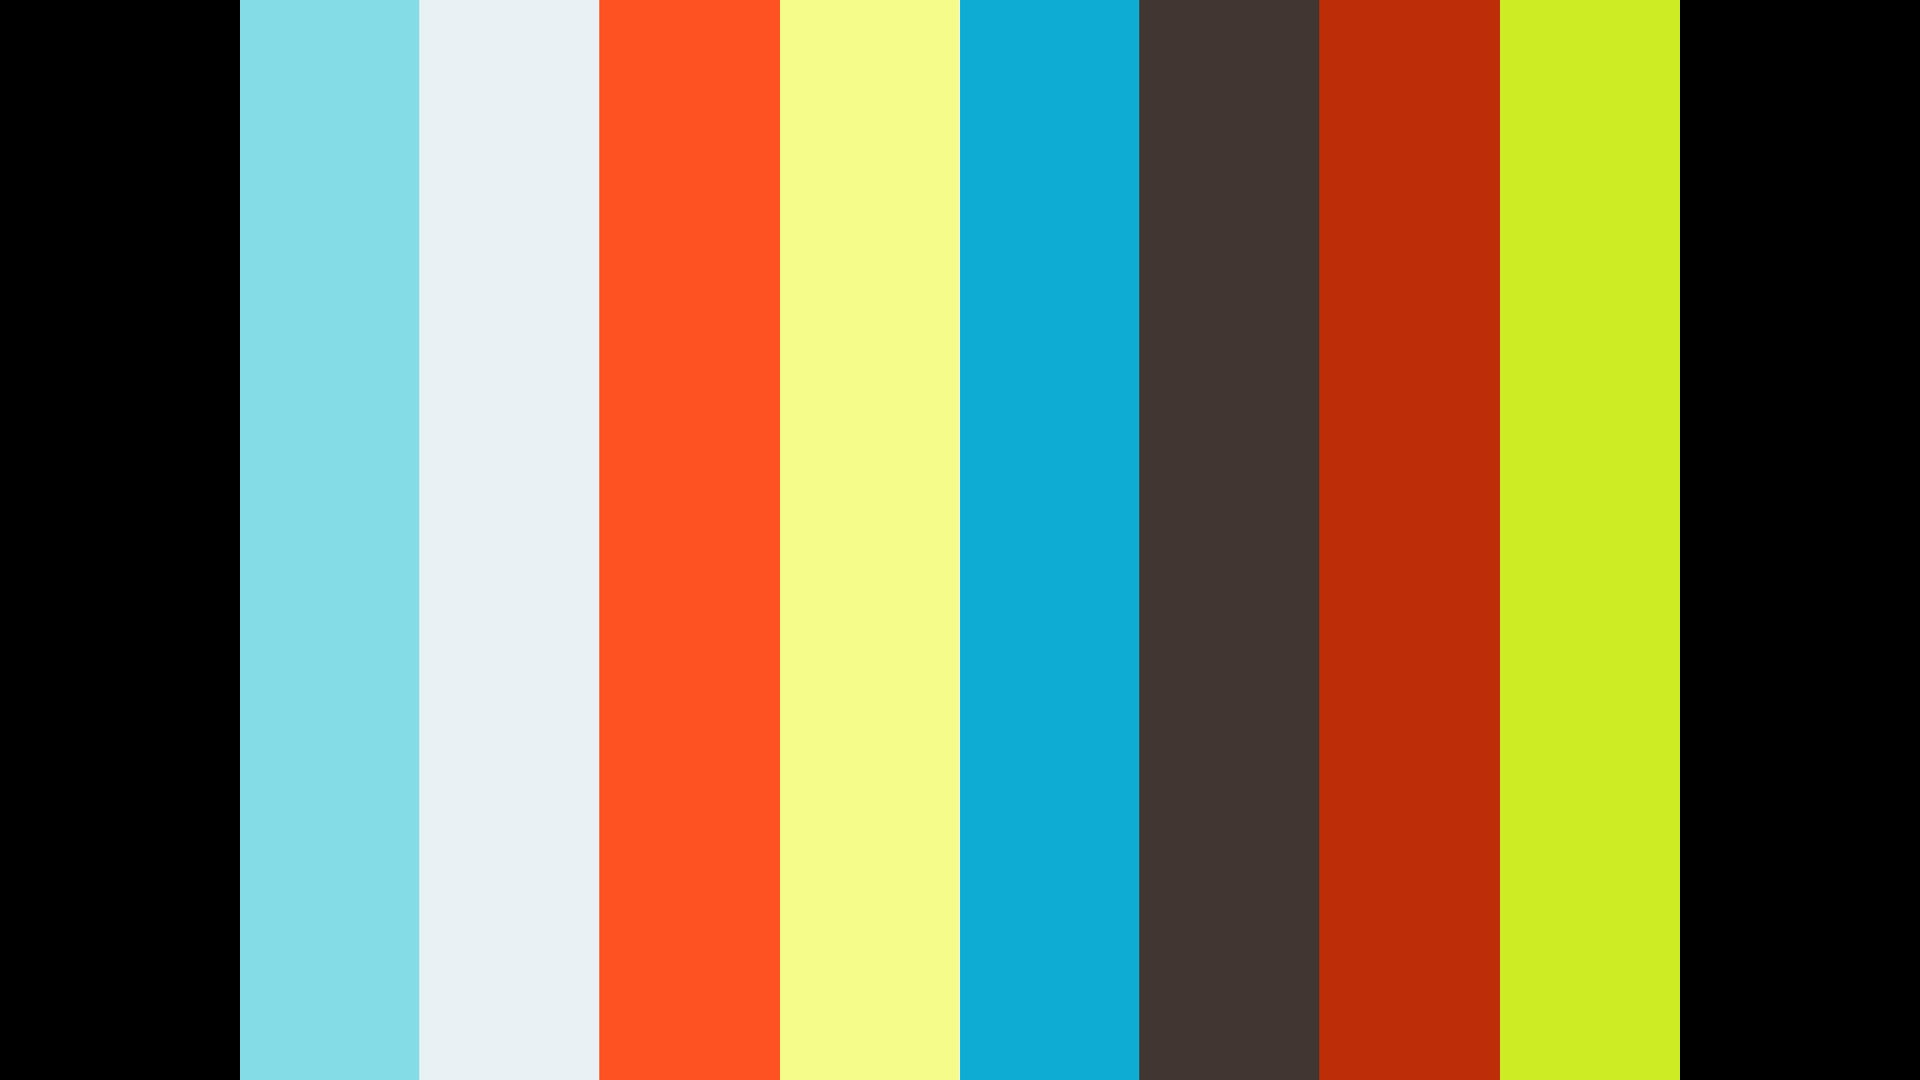 AstraZeneca Vaccine Efficacy Update